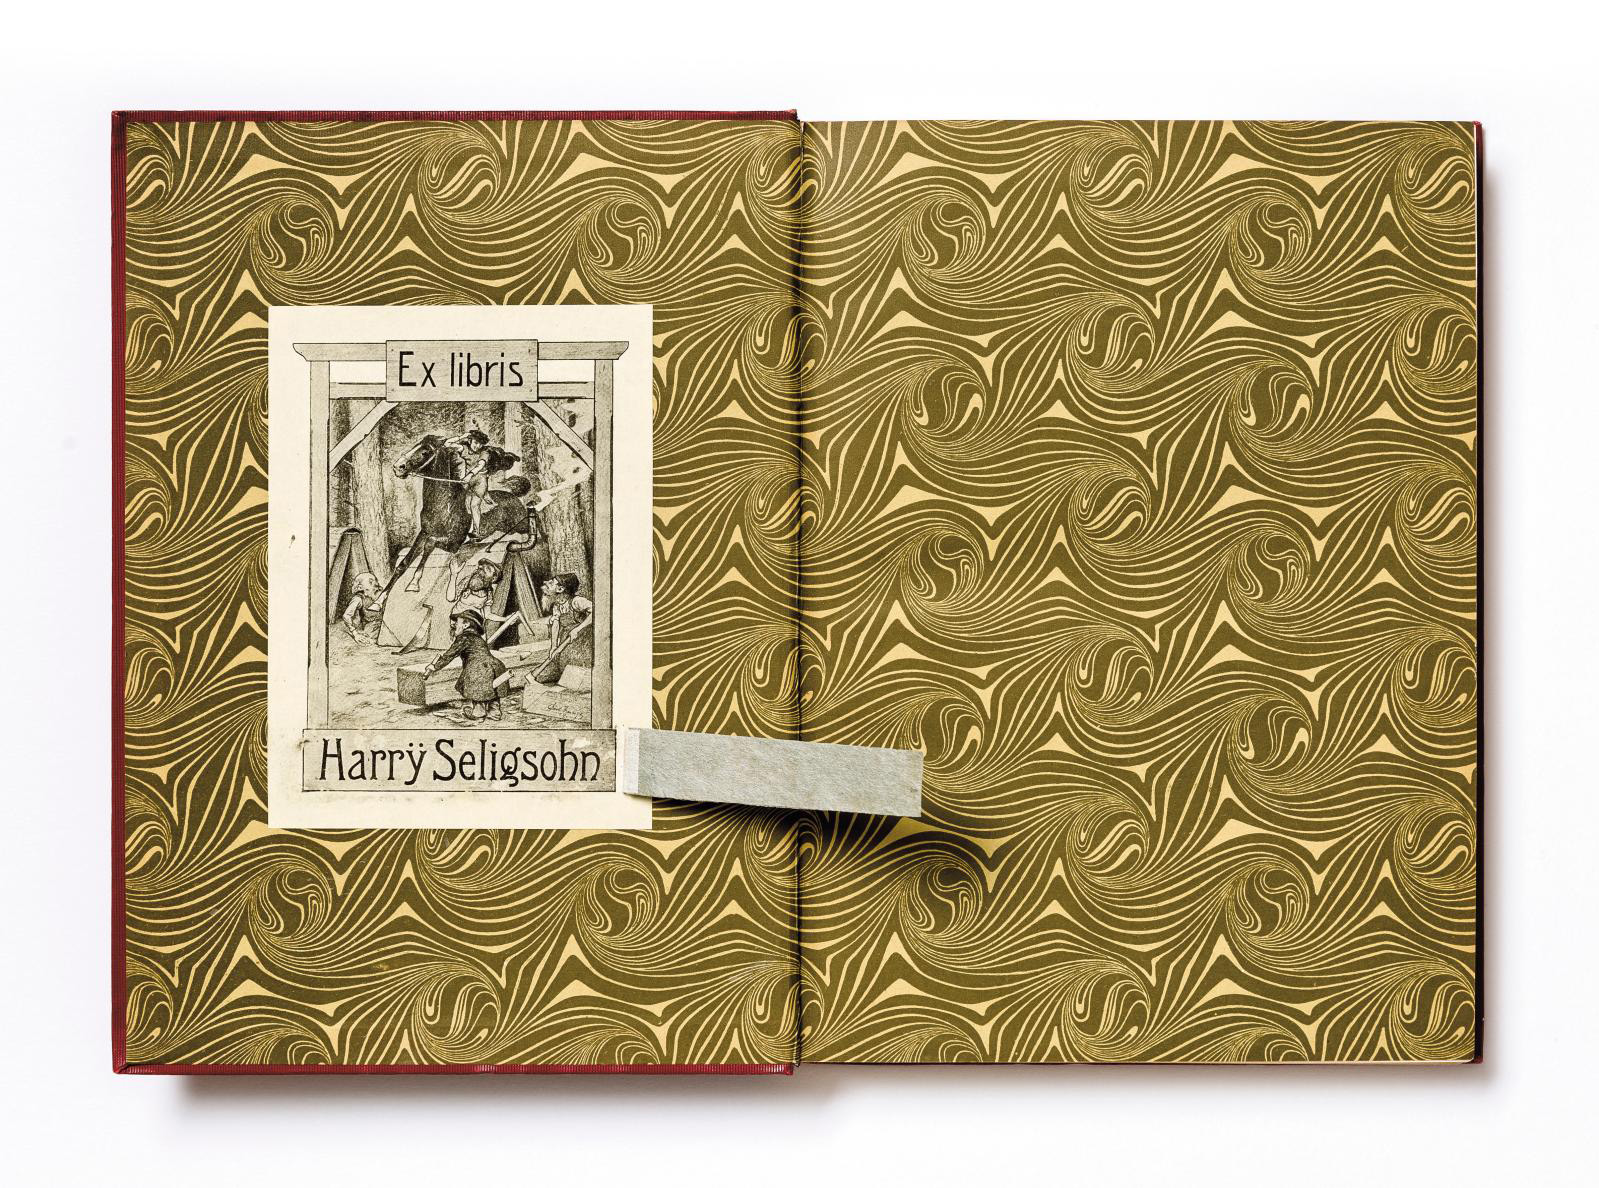 Harrÿ Seligsohn's ex-libris and a strip of paper concealing his name, removed in 2020 during identification work on plundered books. Book: Karl Voll, Memling: Des Meisters Gemälde in 197 Abbildungen, Stuttgart, Leipzig, 1909. Paris, INHA library, BCMN collection, 4 D 0229 (14). The book entered the BCMN collections through a donation by France's National Museums department in 1946.